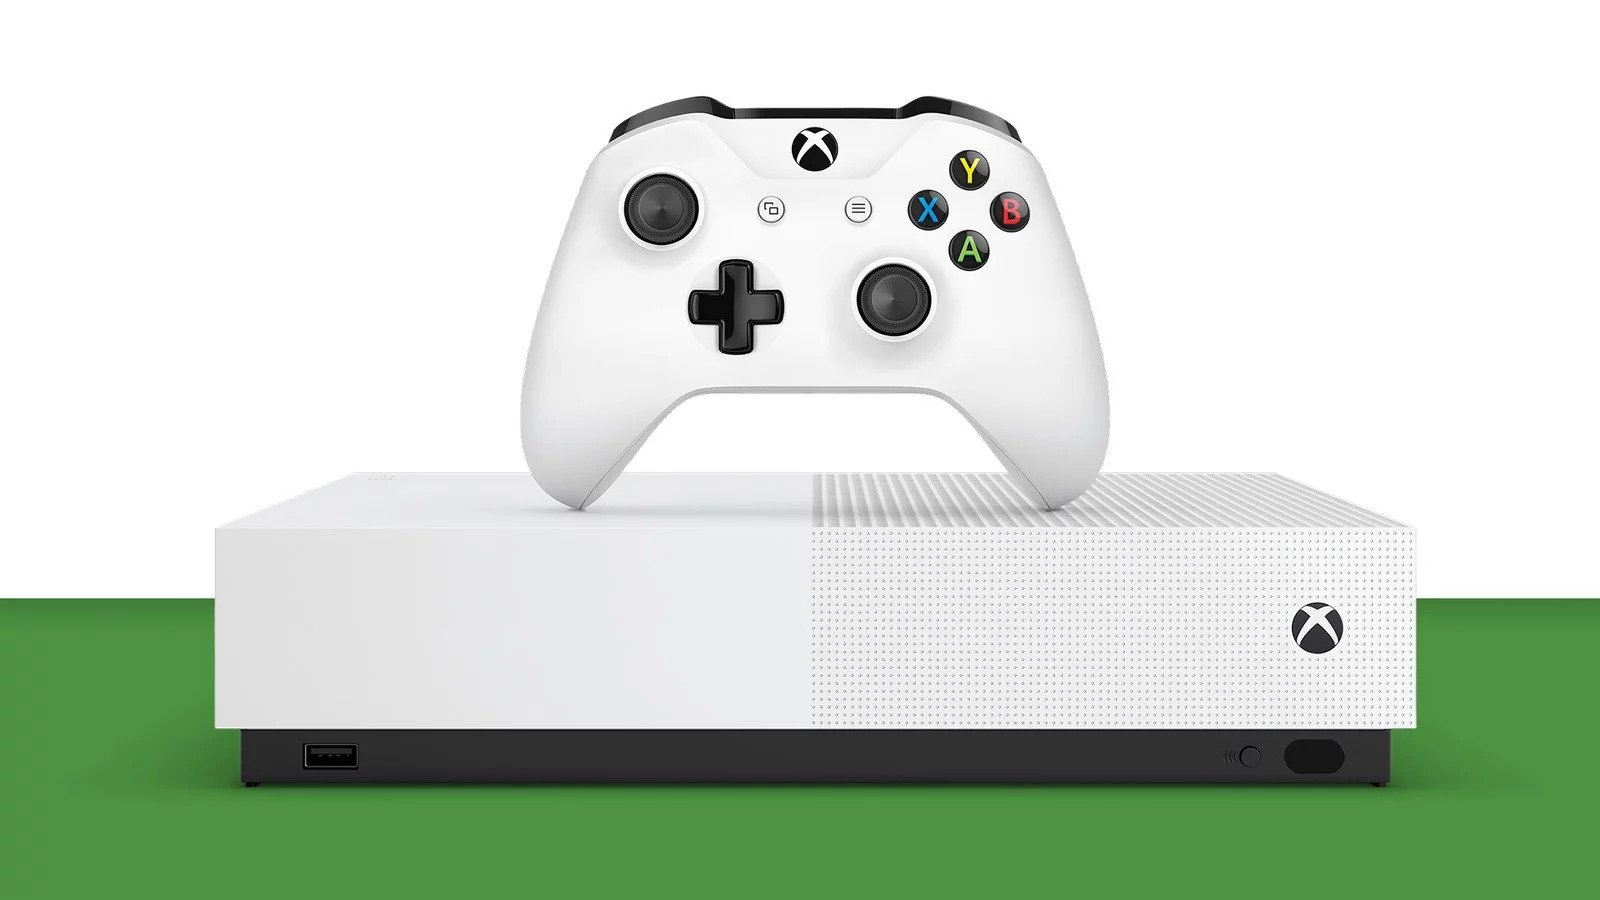 Xbox One S All-Digital Edition - not Blu-ray compatible